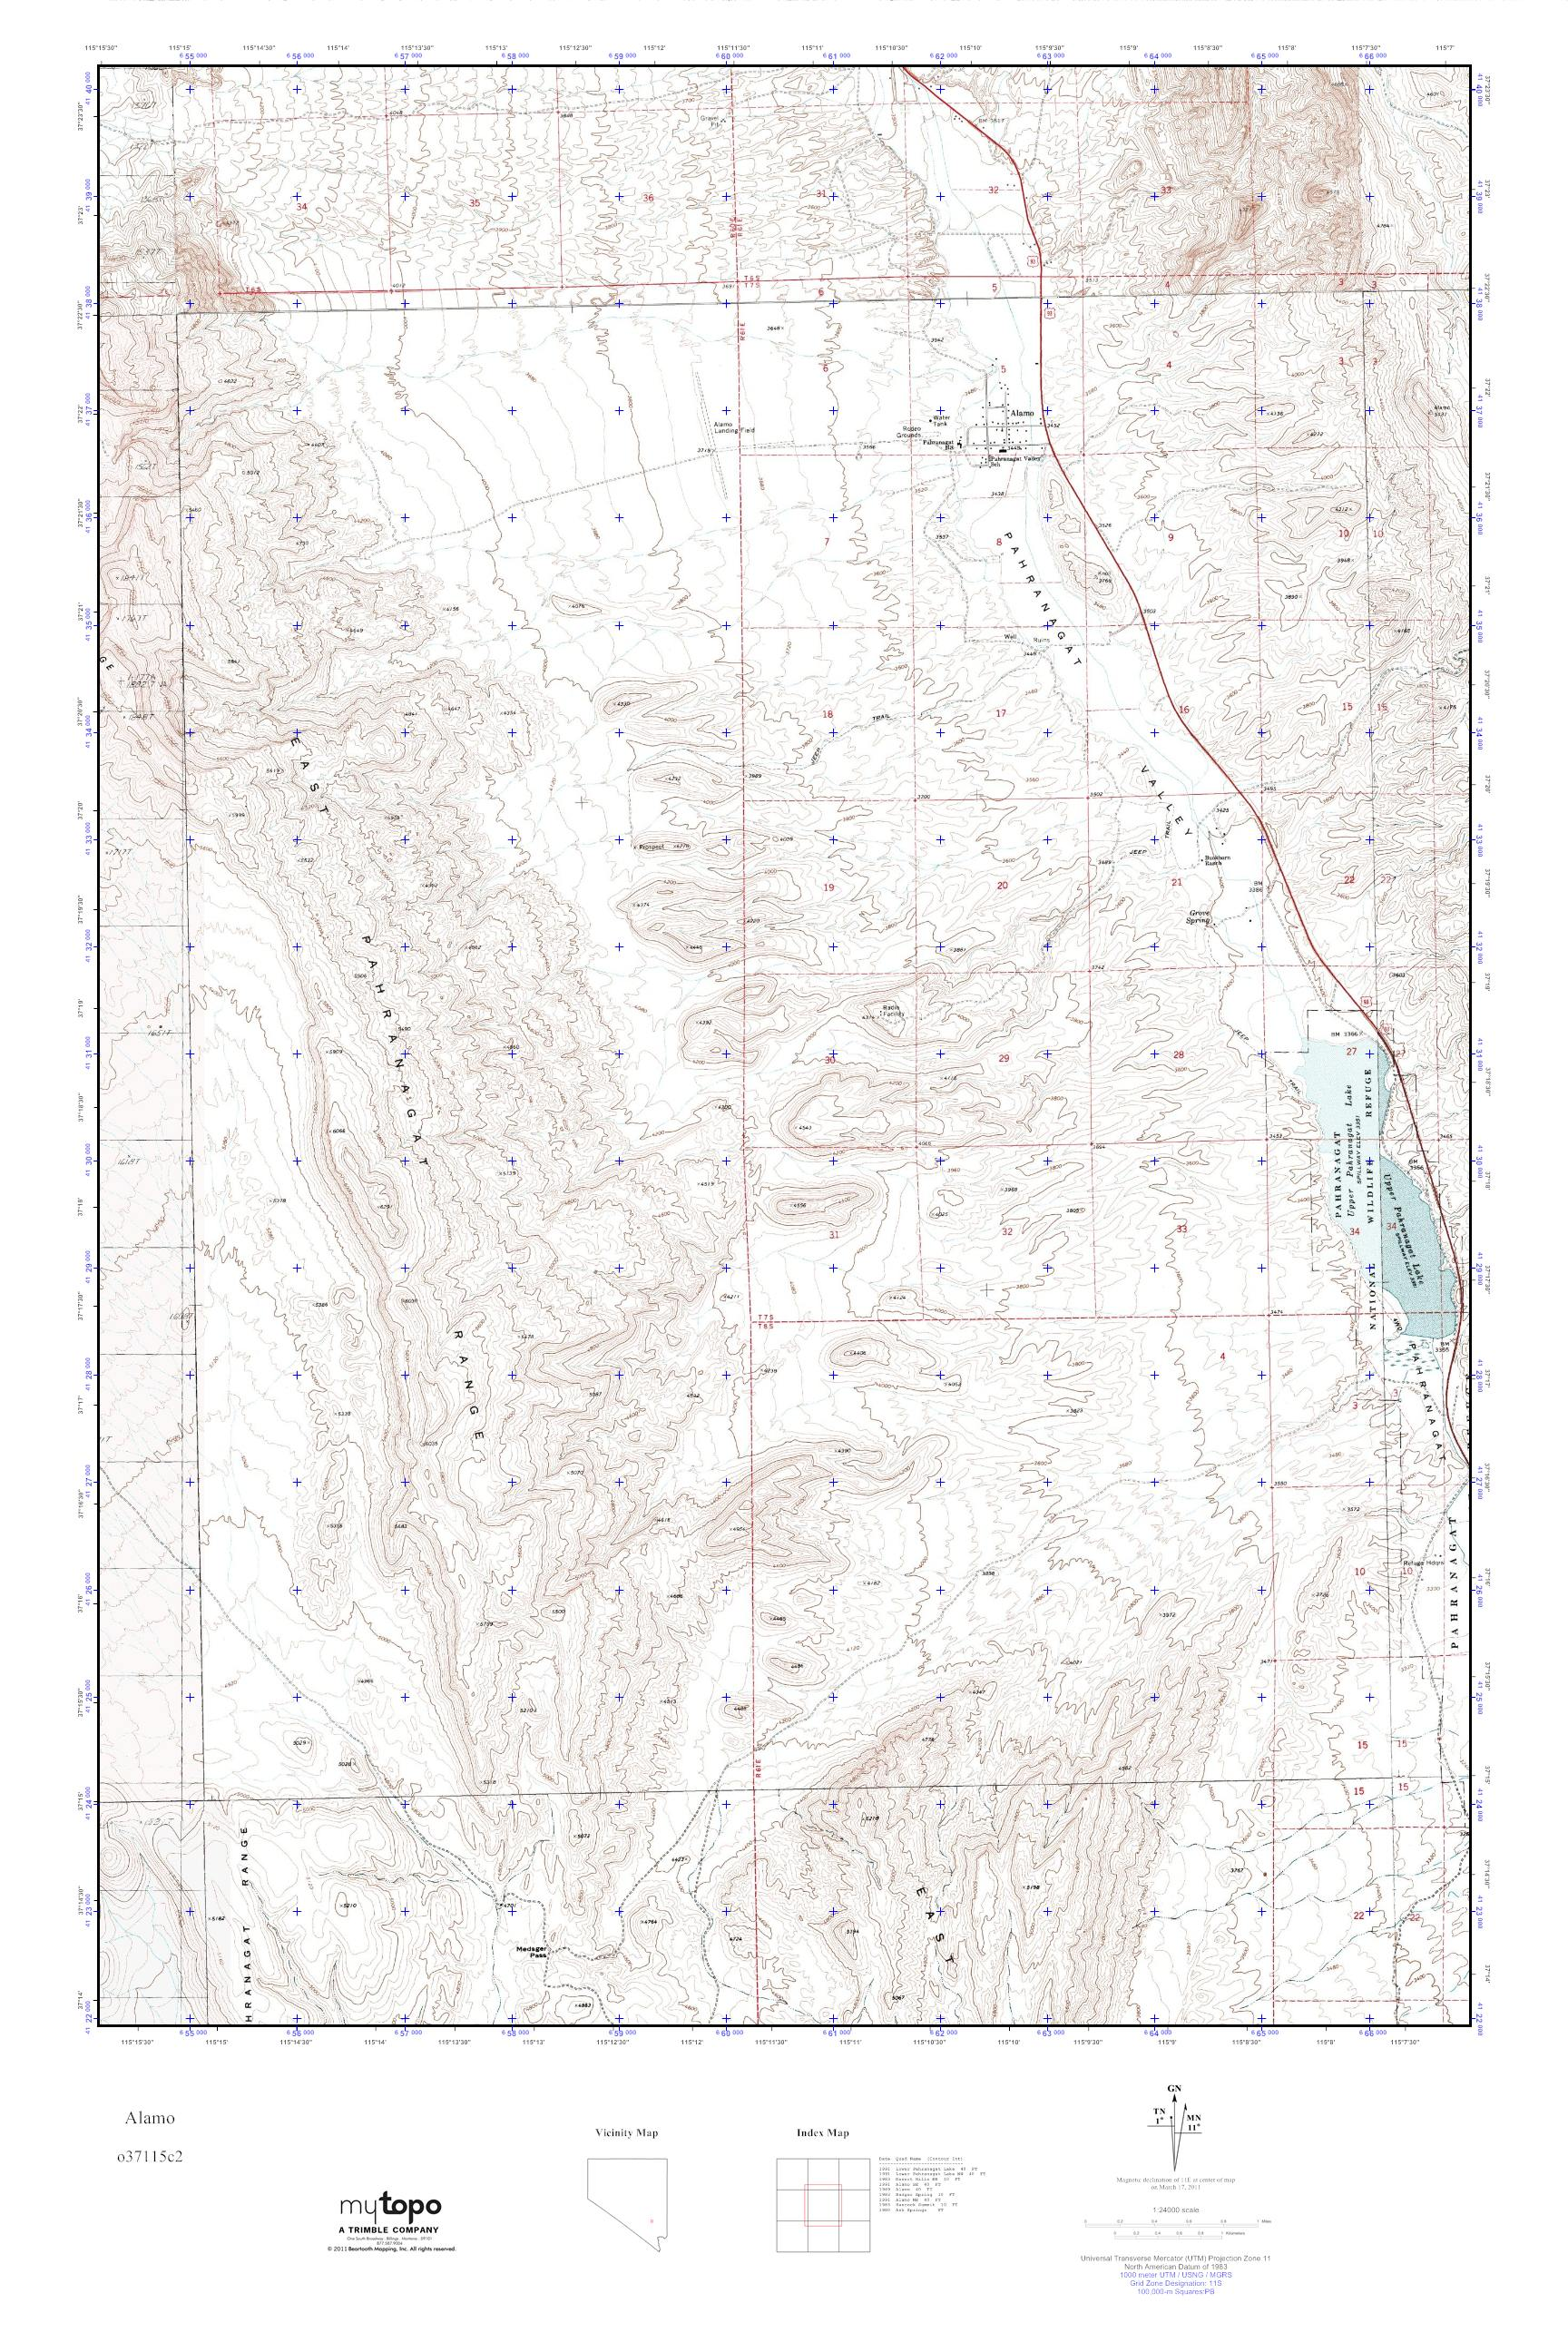 MyTopo Alamo, Nevada USGS Quad Topo Map on